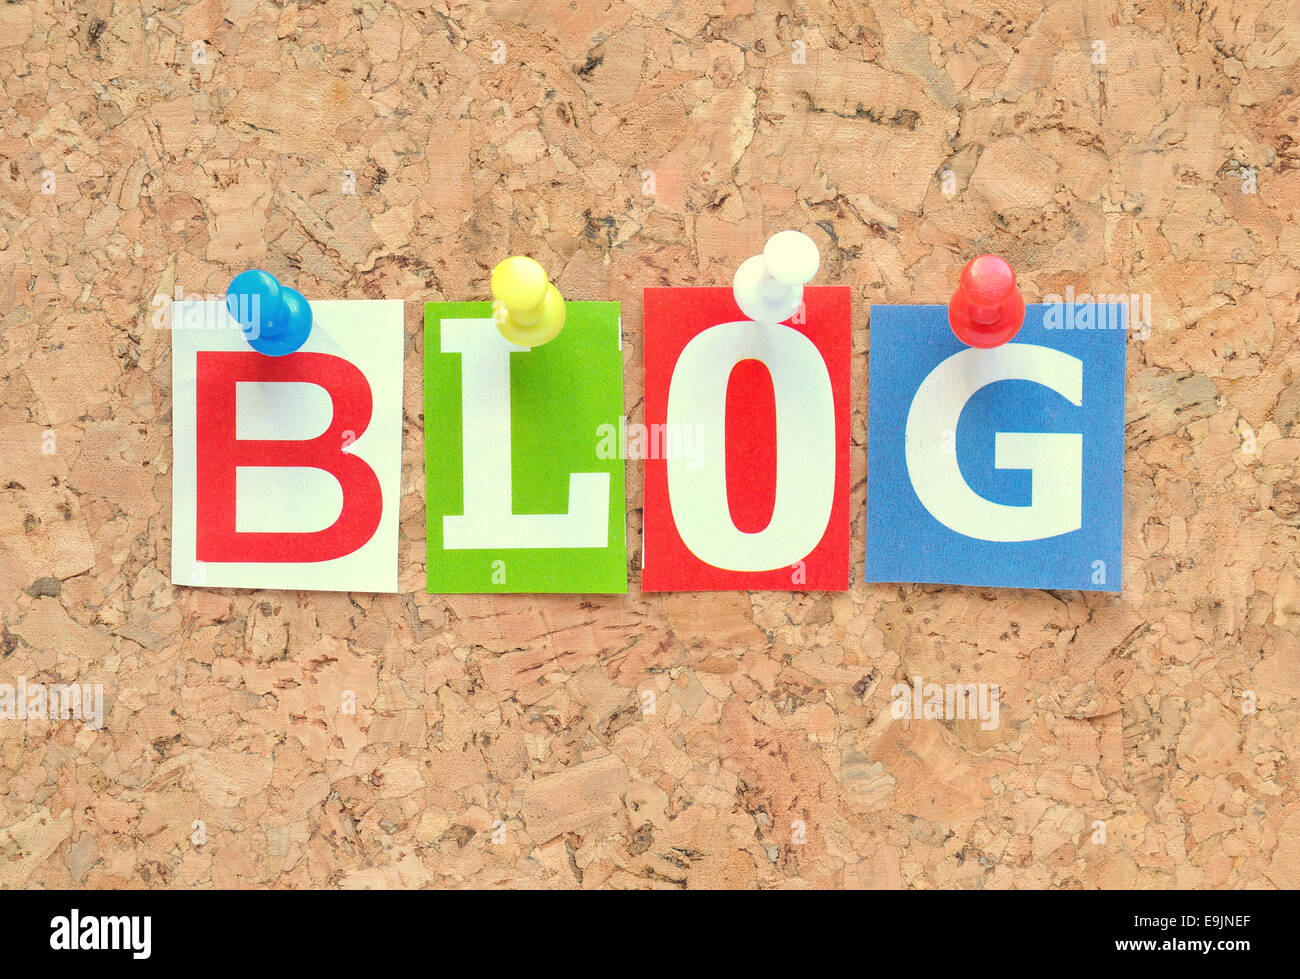 Blog with multicolored newspaper letters on a cardboard - Stock Image